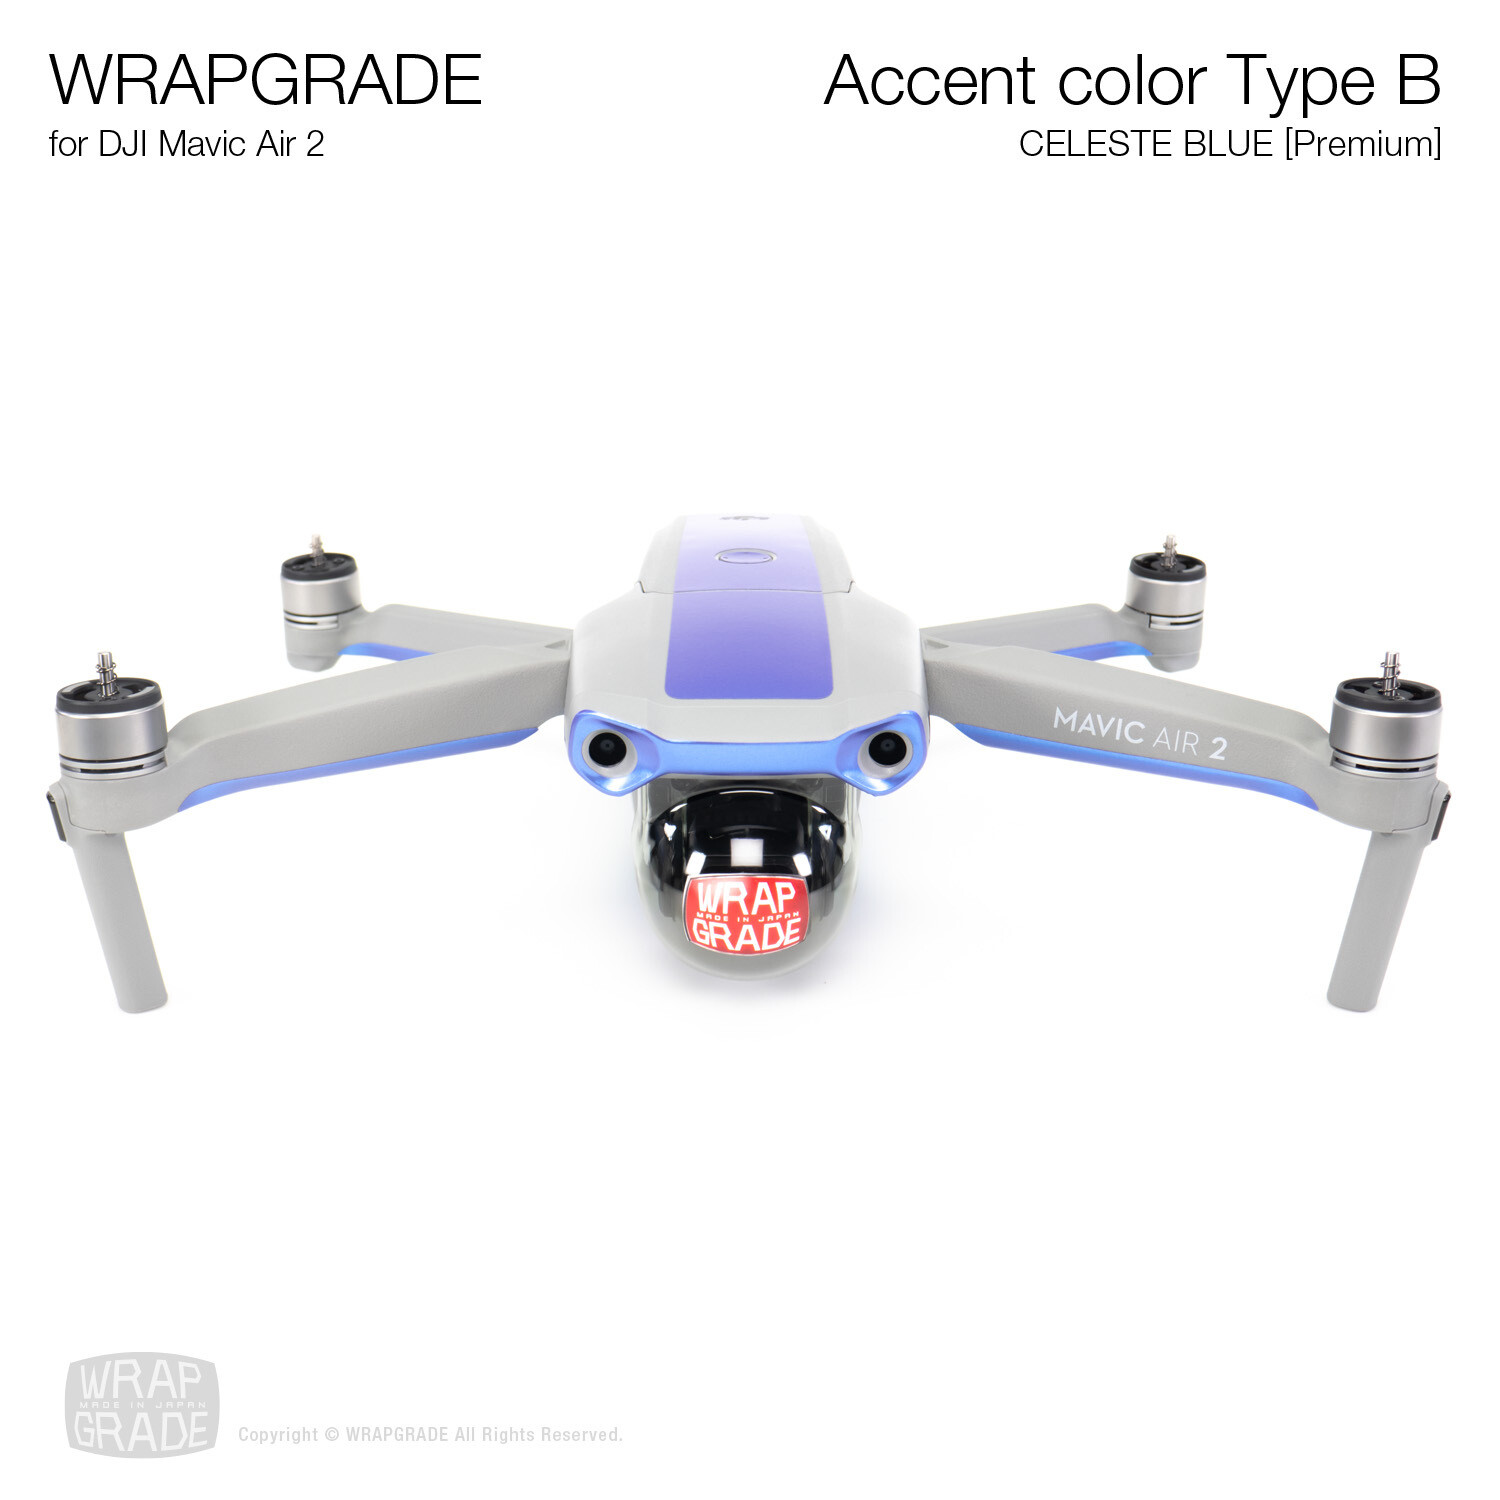 Wrapgrade for DJI Mavic Air 2 | Accent Color B (CELESTE BLUE)